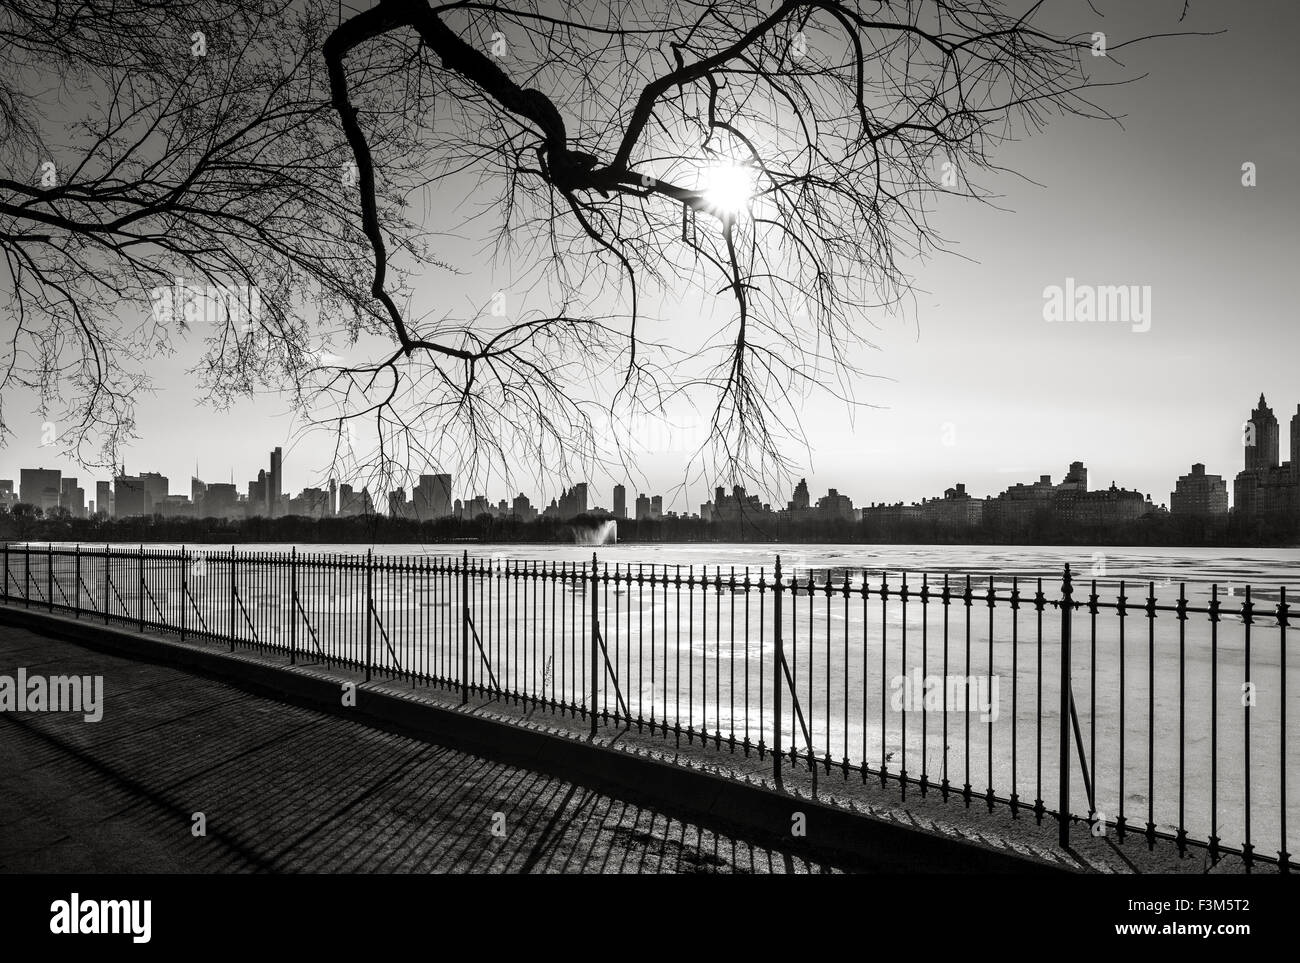 Black and White photograph of New York in winter, The Reservoir in Central Park and Upper West Side, NYC. - Stock Image